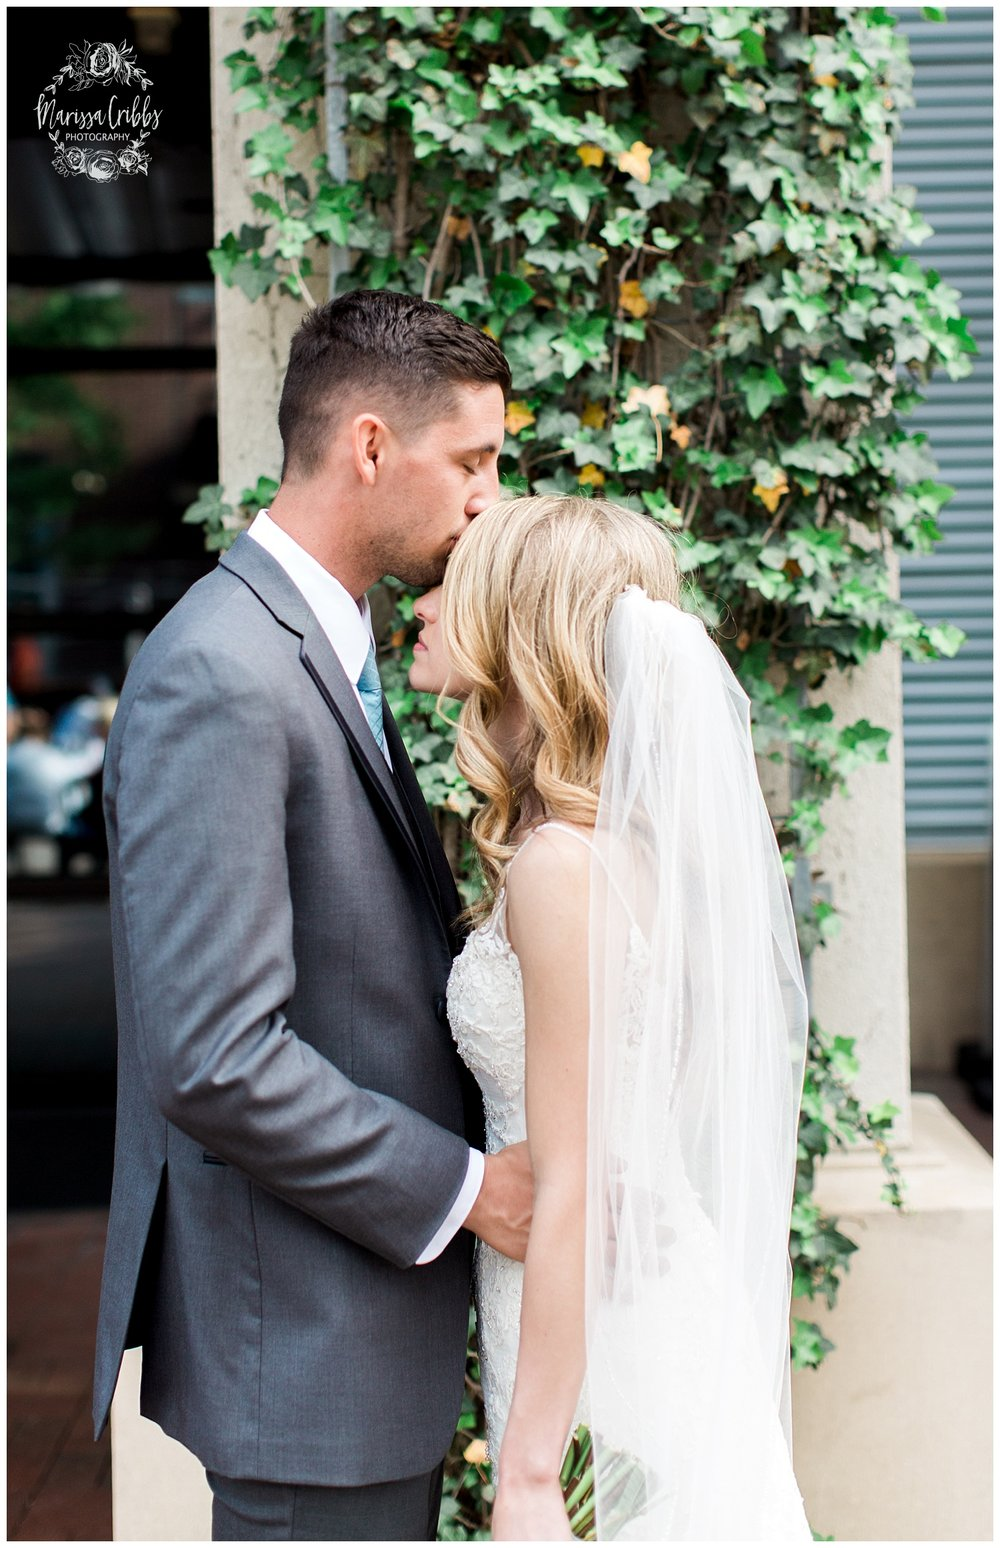 Maree & Corey | Berg Event Space Wedding | Kansas City Wedding Photos | KC Photographers | Marissa Cribbs Photography | KC Wedding Photographers_0922.jpg